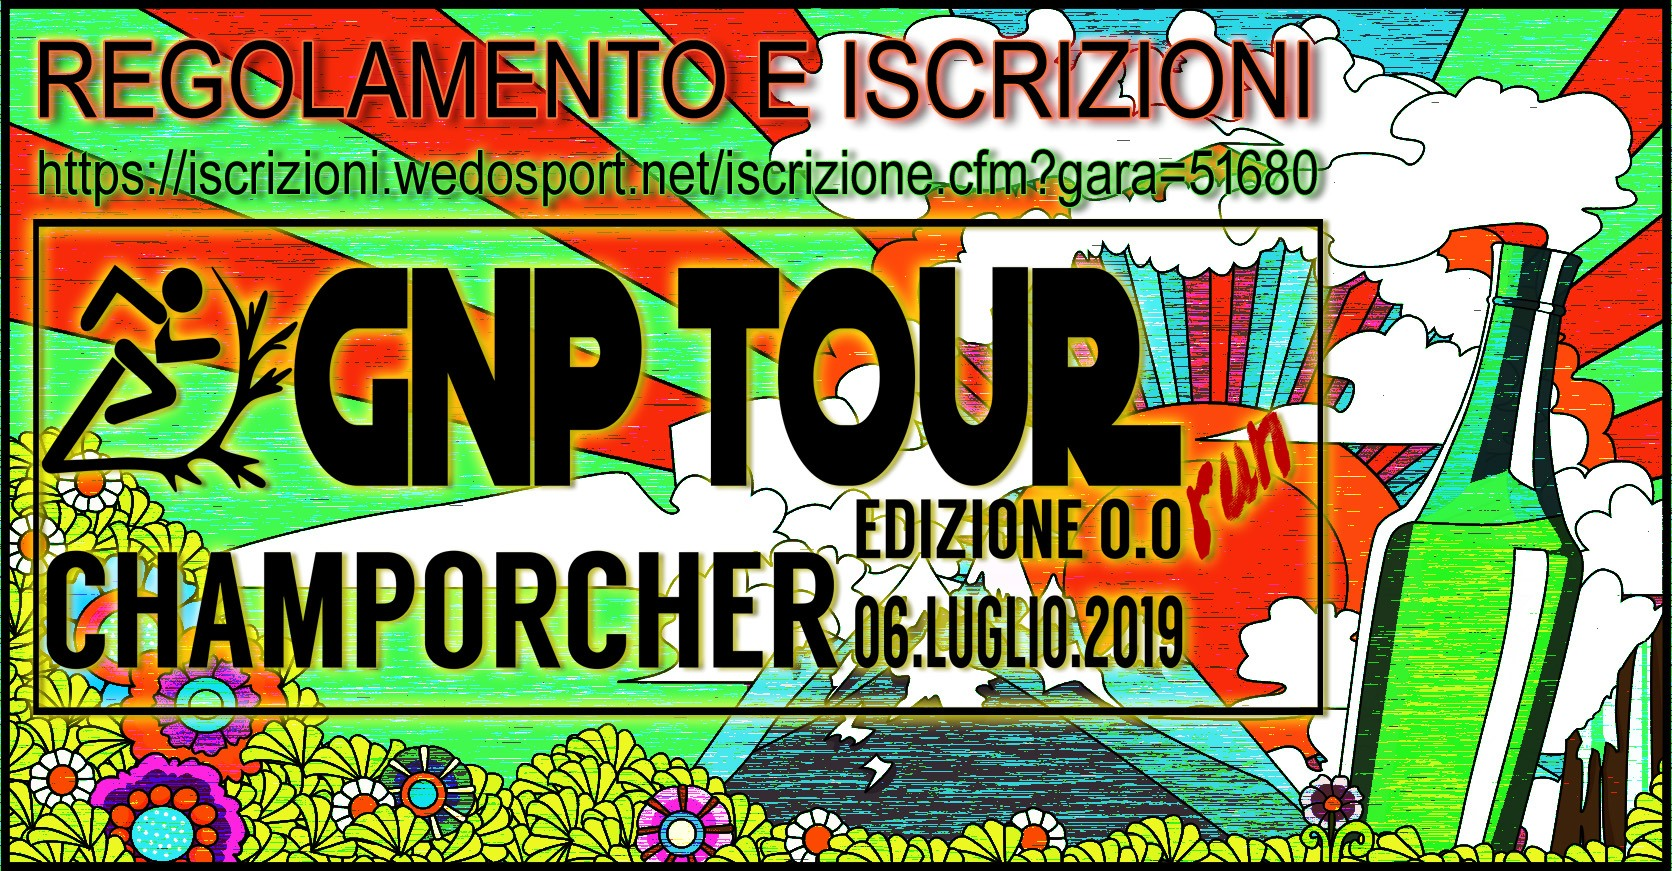 Gnp Tour Run – 6 luglio 2019 – Champorcher